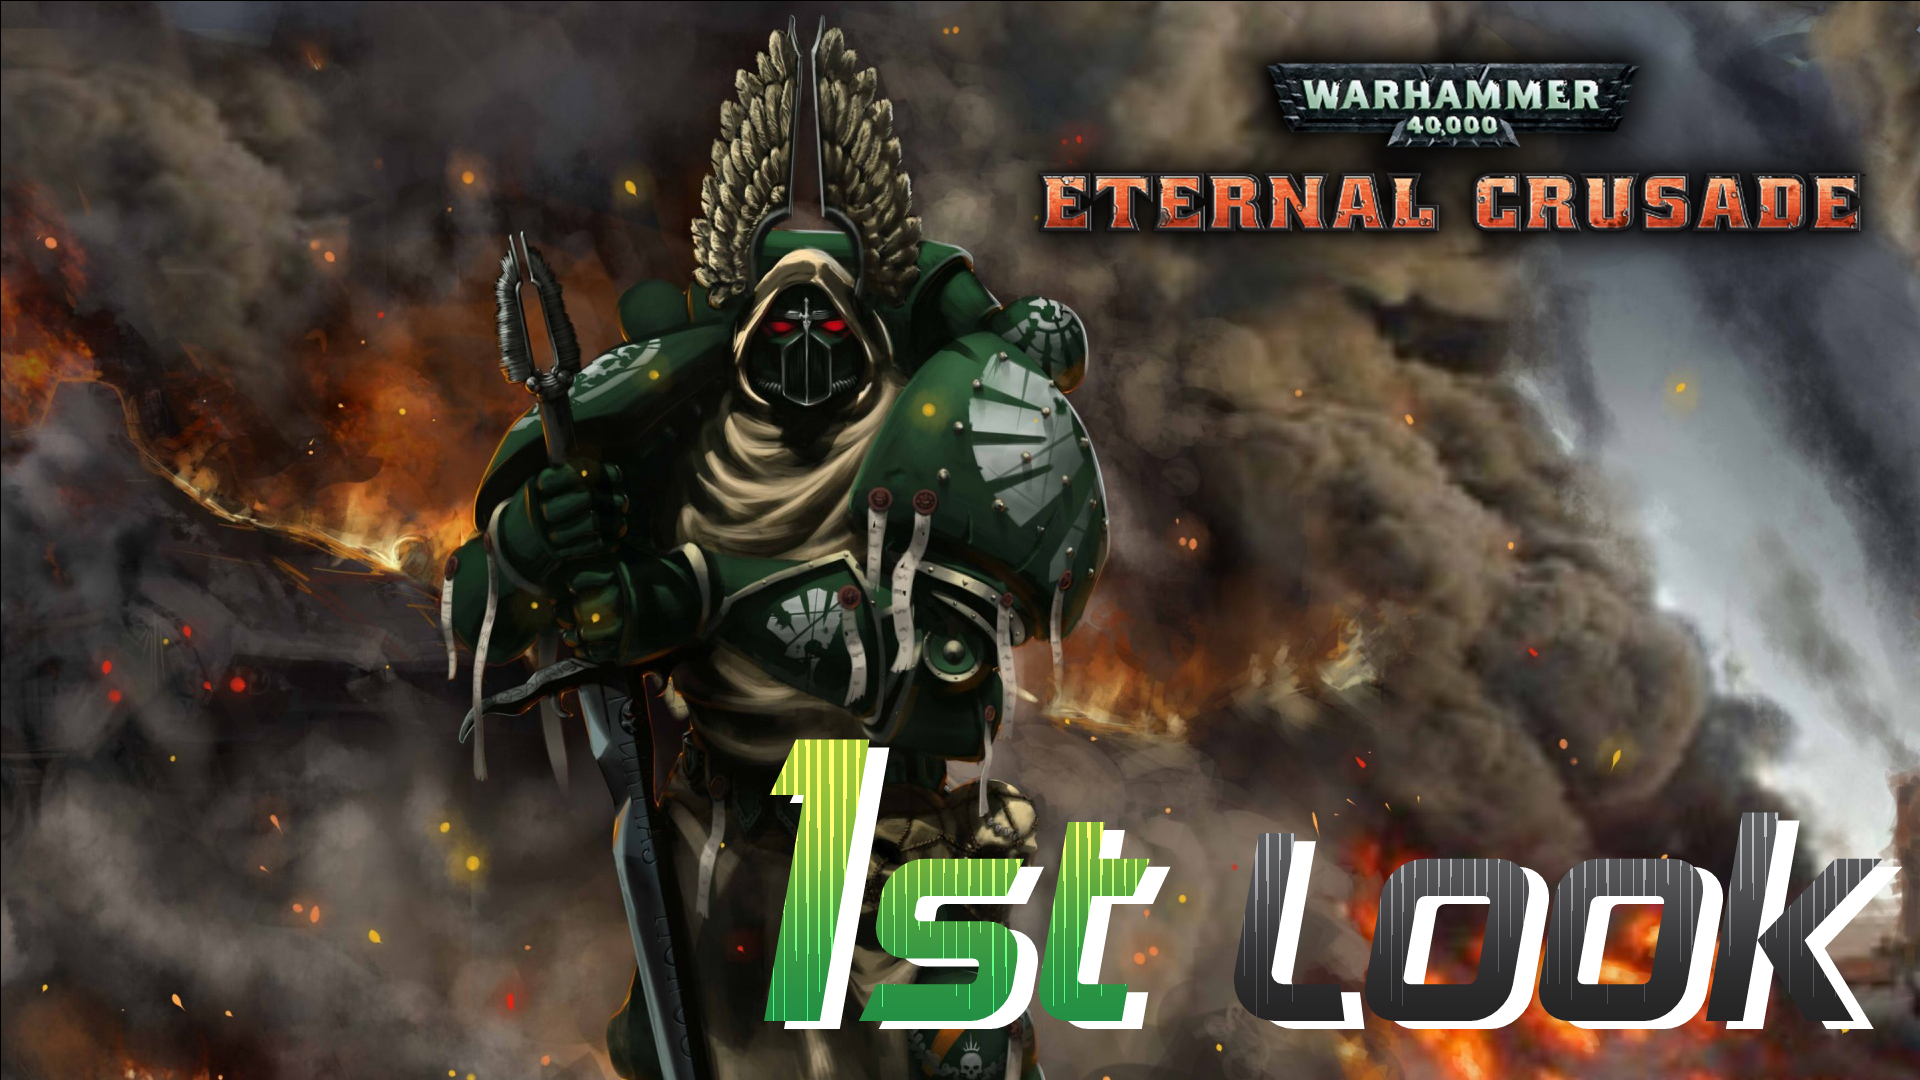 Warhammer 40k Eternal Crusade First Look